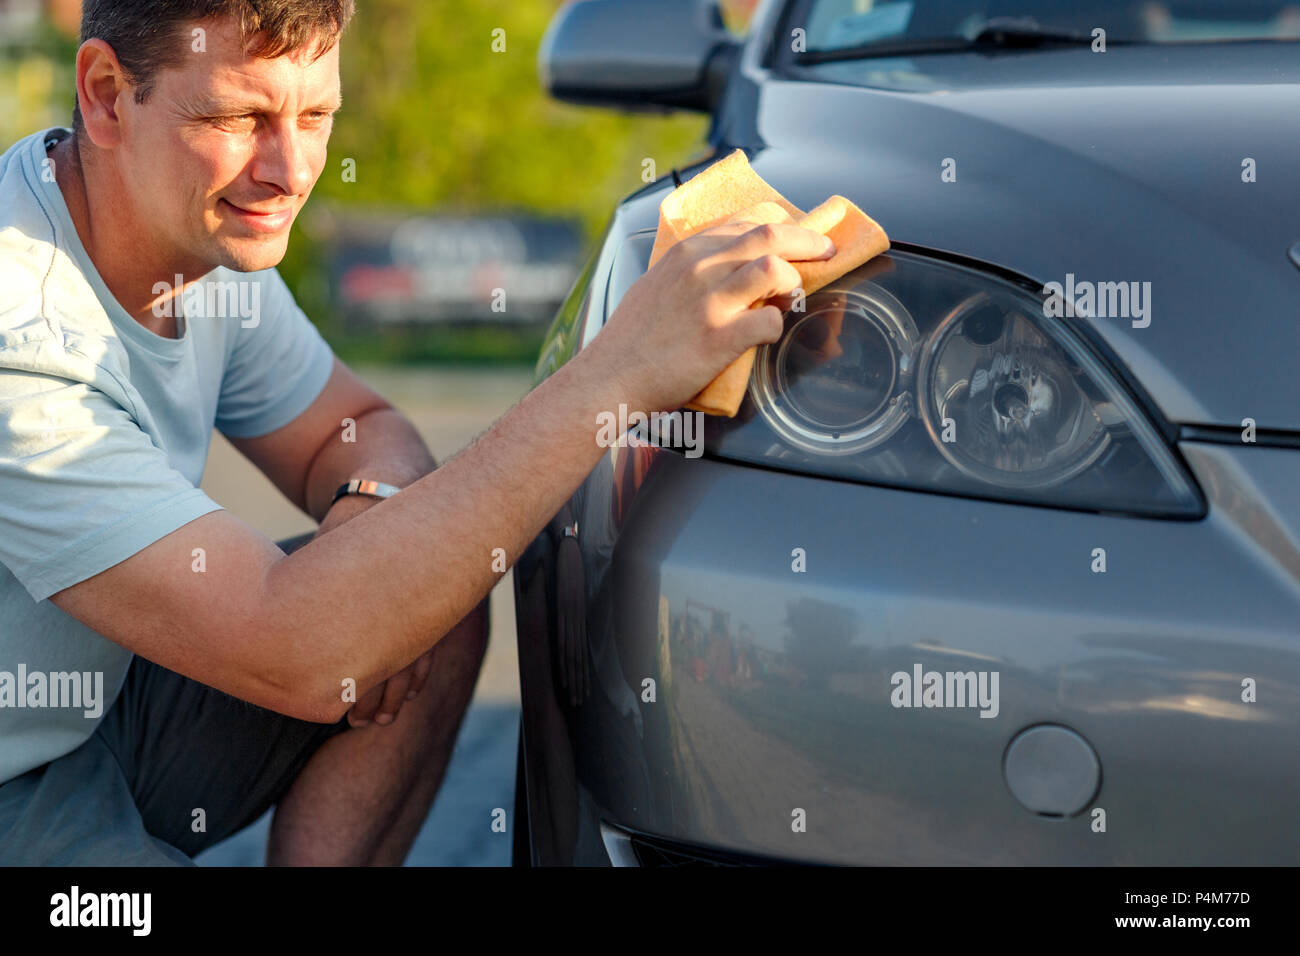 Giving the car a good polish - close up of man cleaning car with microfiber cloth, car detailing Stock Photo